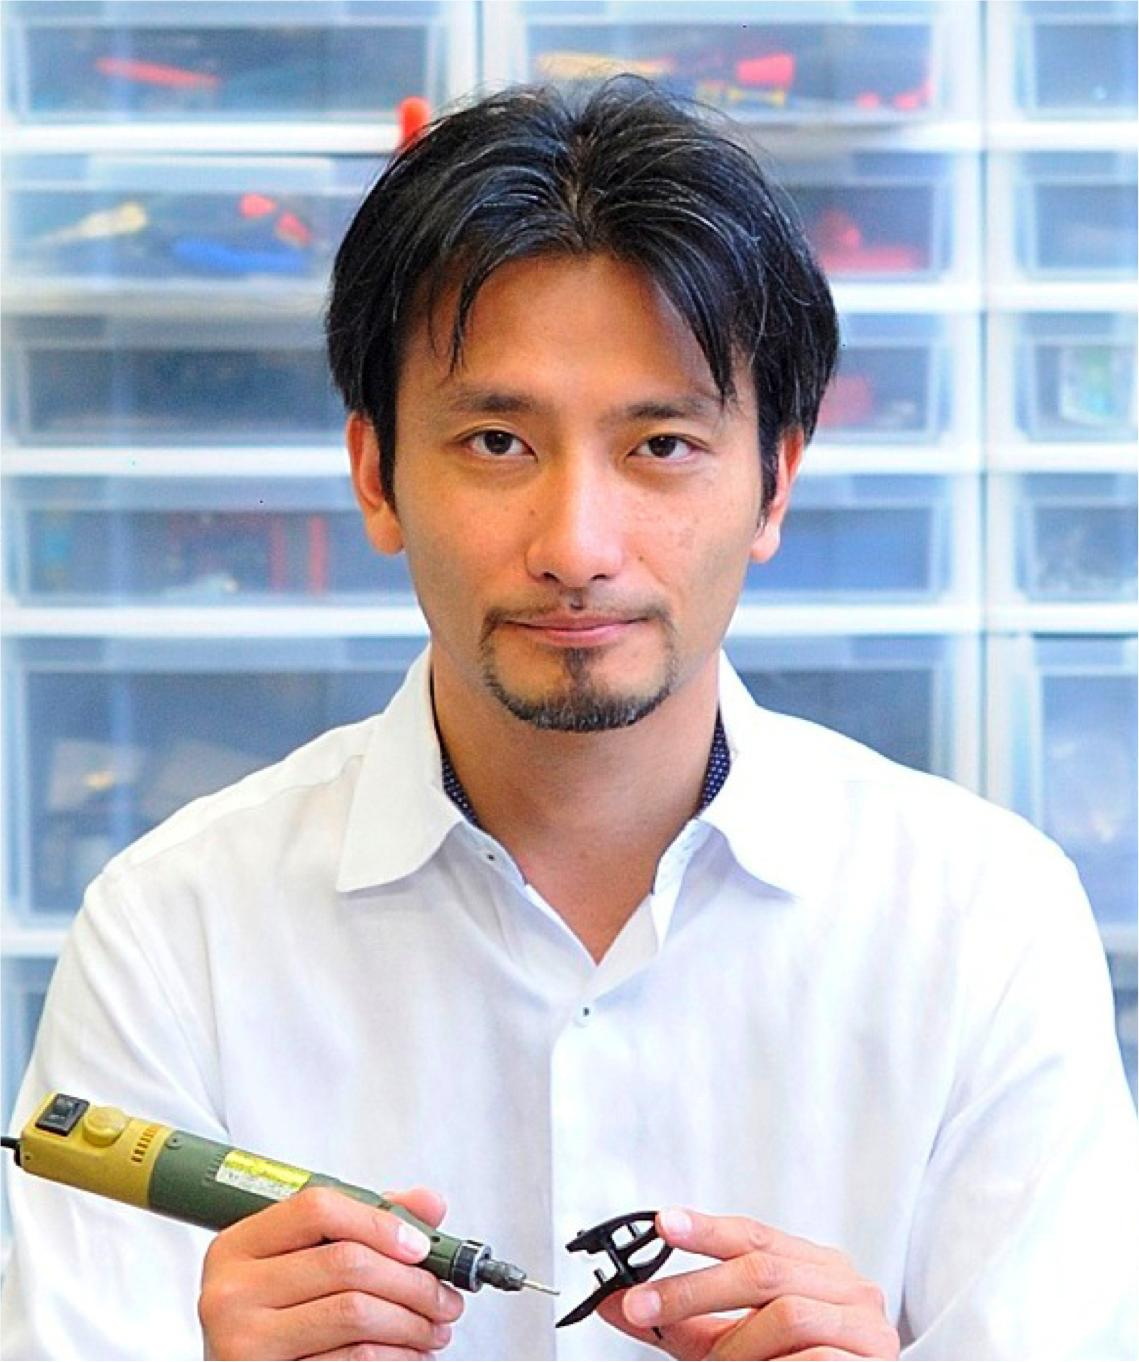 Photo of Mr. Tomotaka Takahashi, Robot Creator